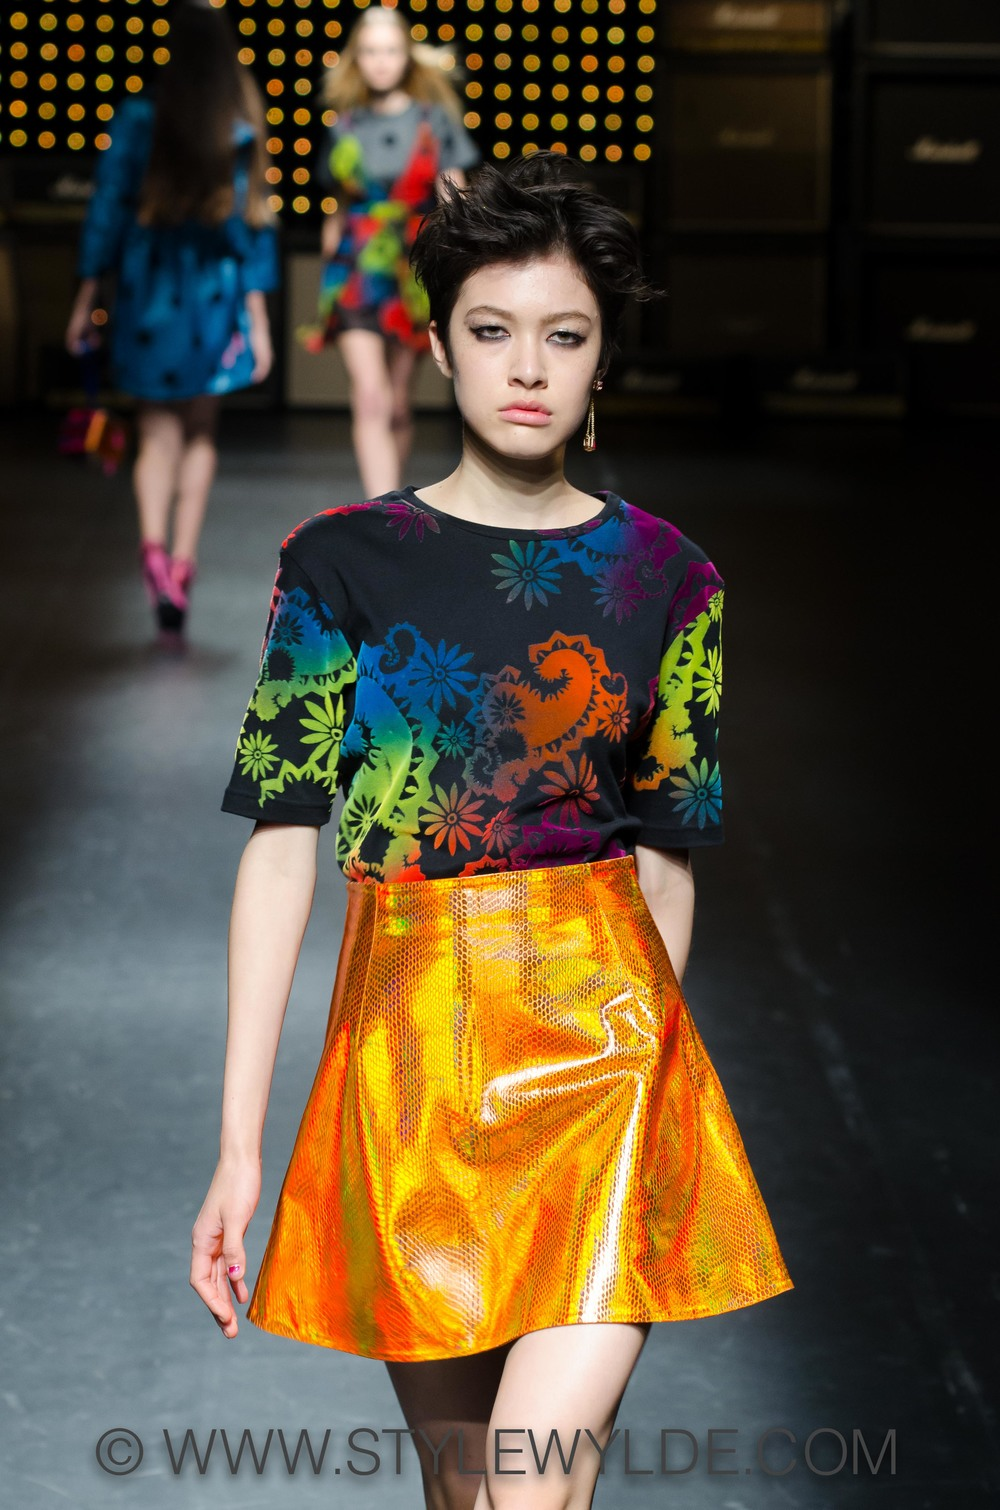 stylewylde_HouseofHolland_SS15 (65 of 68).jpg